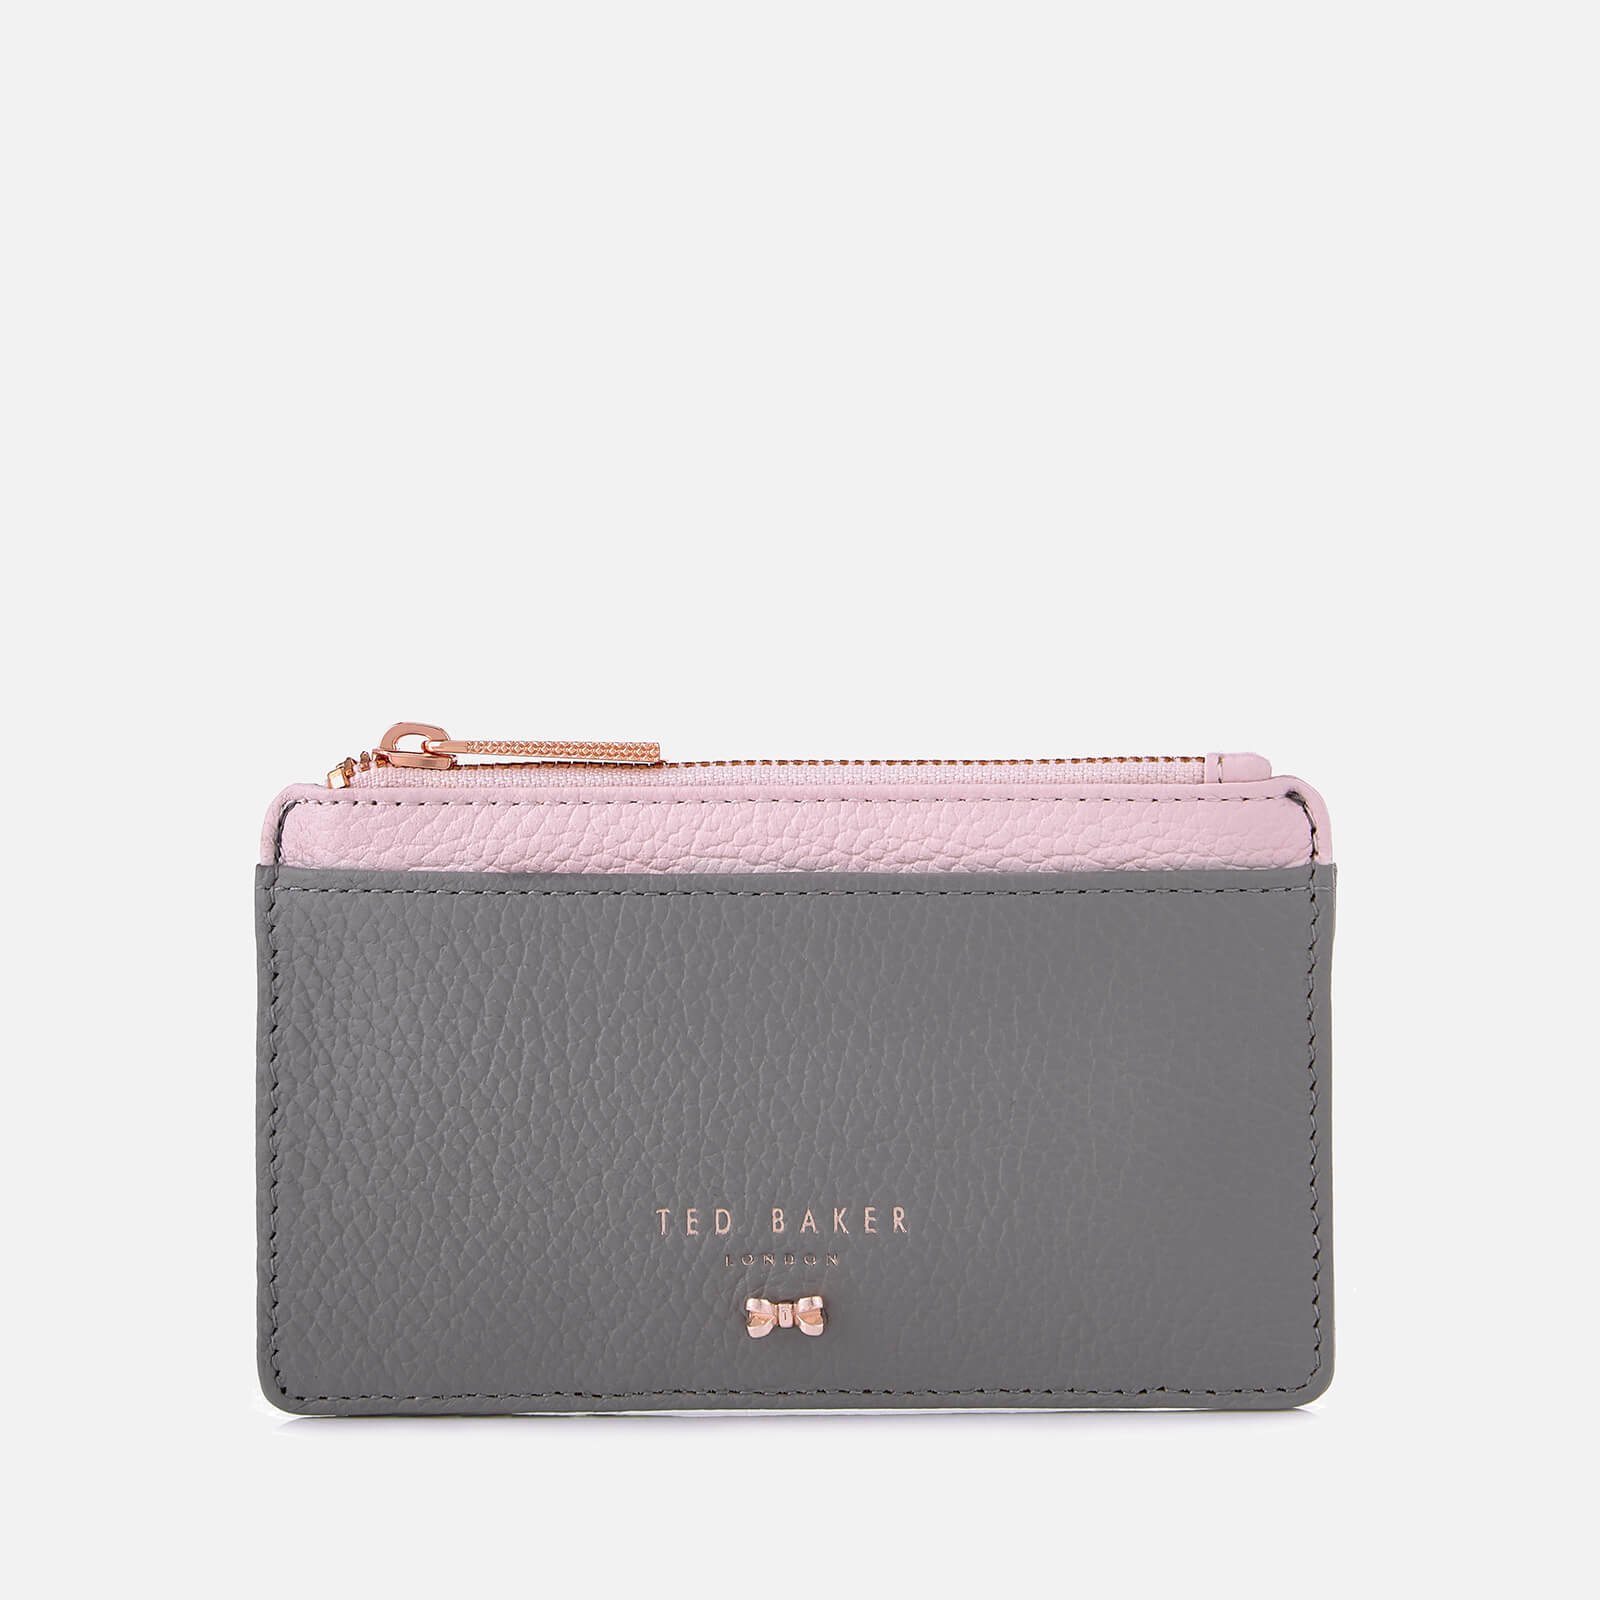 factory price 6f4ab e7d1f Ted Baker Women's Alica Zipped Card Holder - Mid Grey